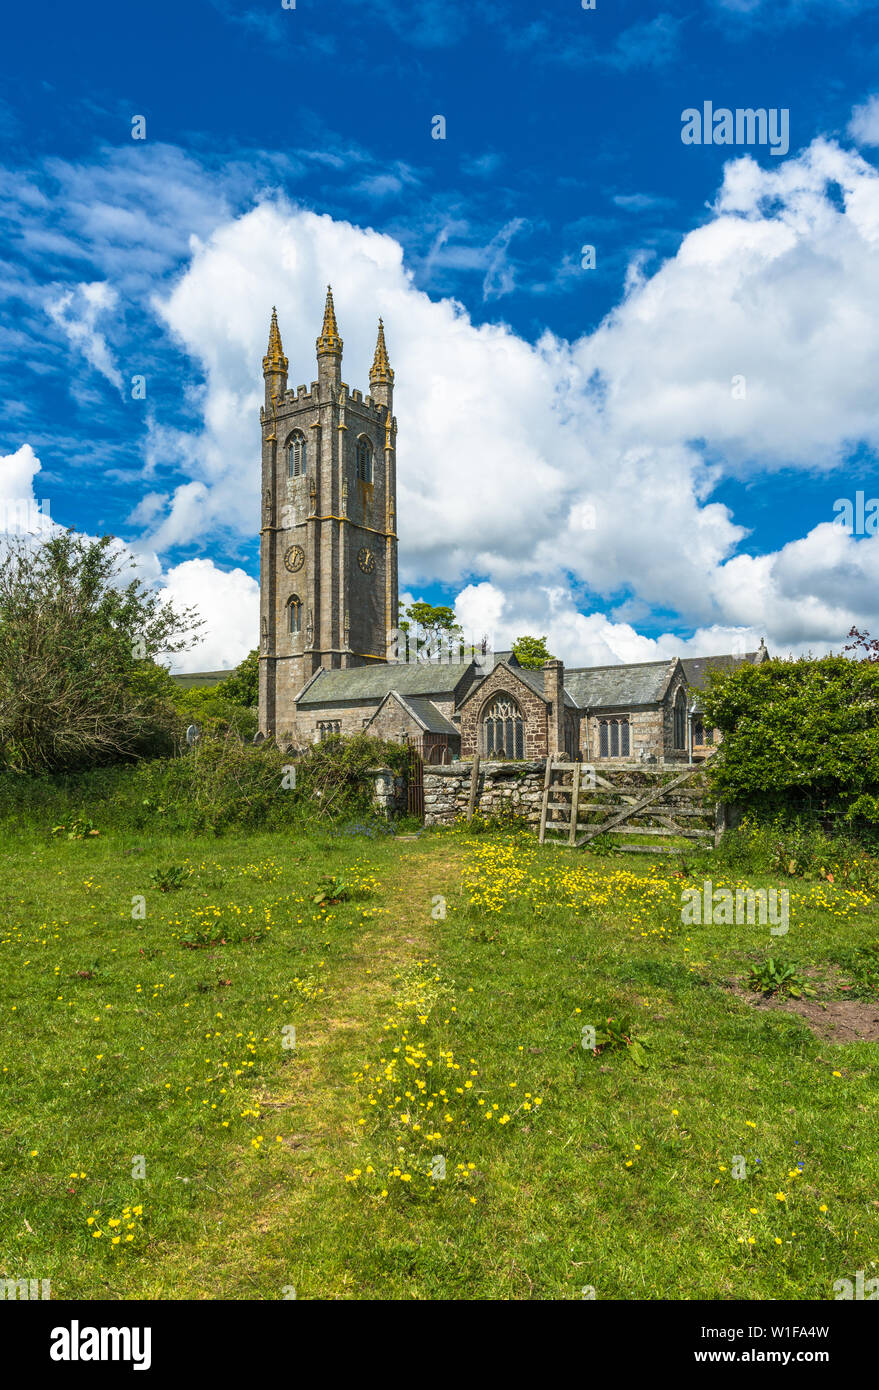 St Pancras Church at Widecome in the Moor village in Dartmoor National park, Devon, England, UK. - Stock Image